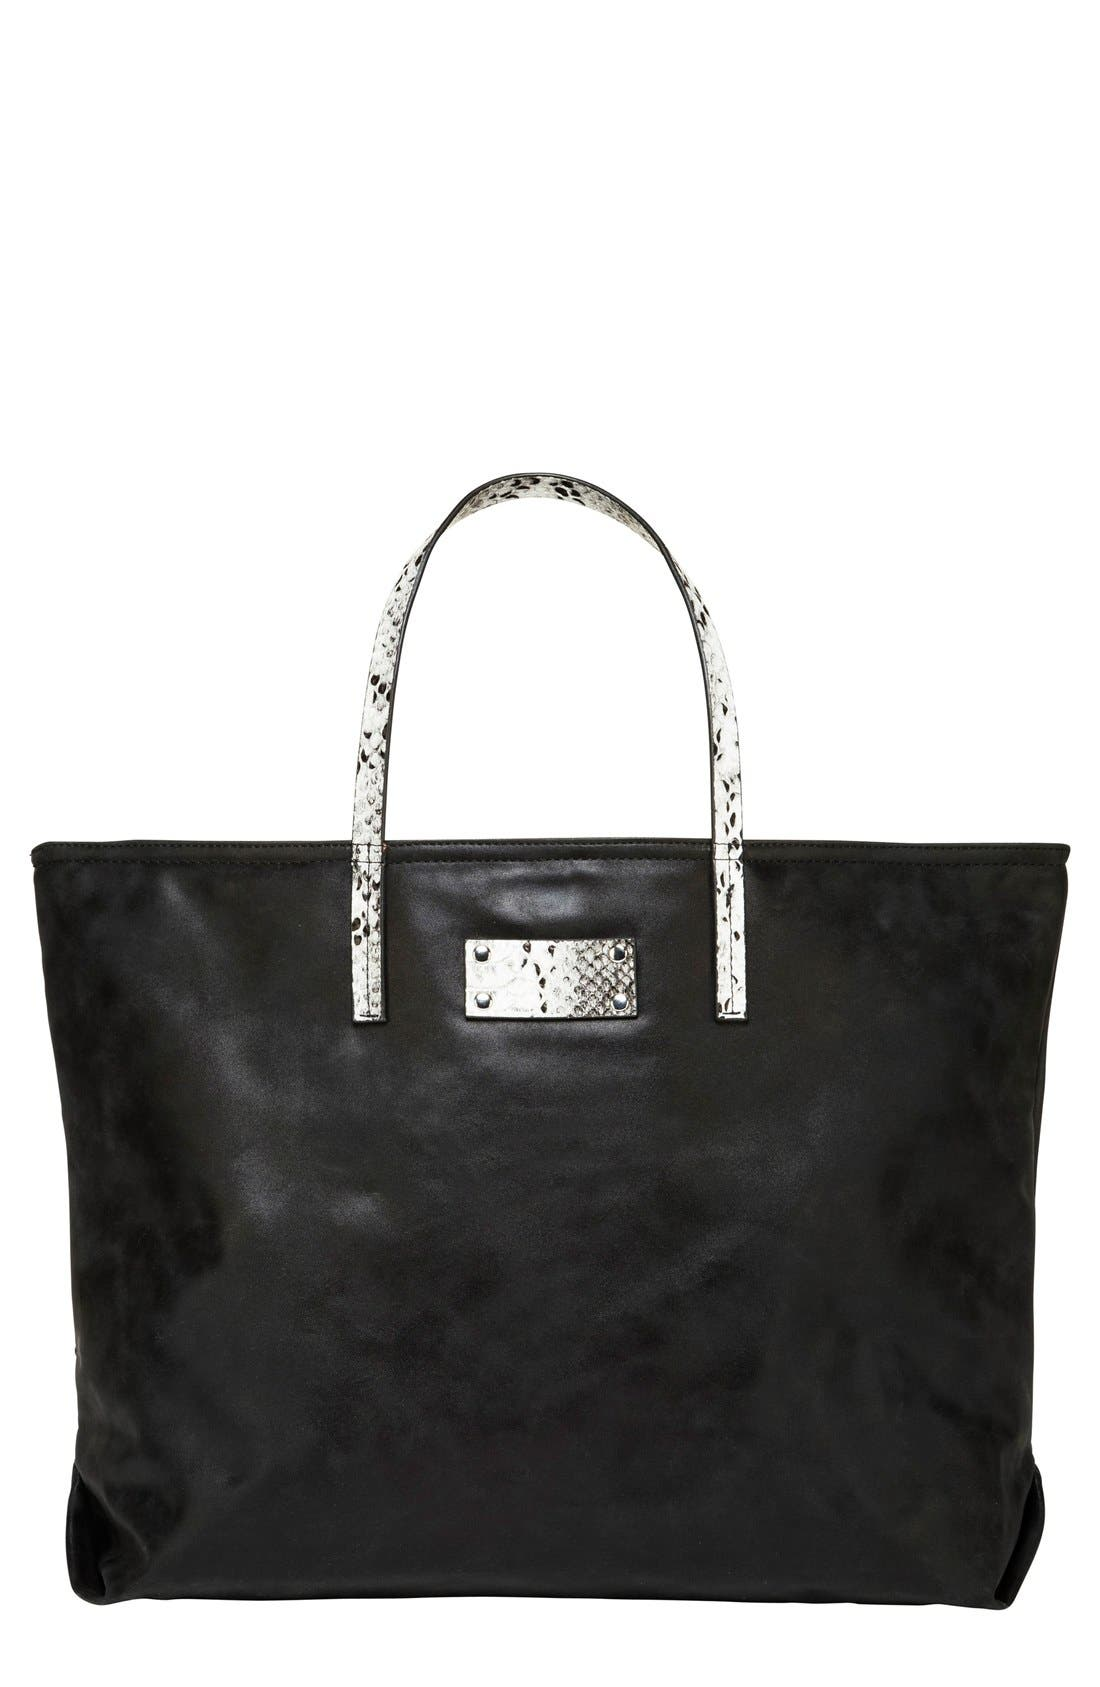 Sun Valley Vegan Leather Tote,                             Main thumbnail 1, color,                             Black